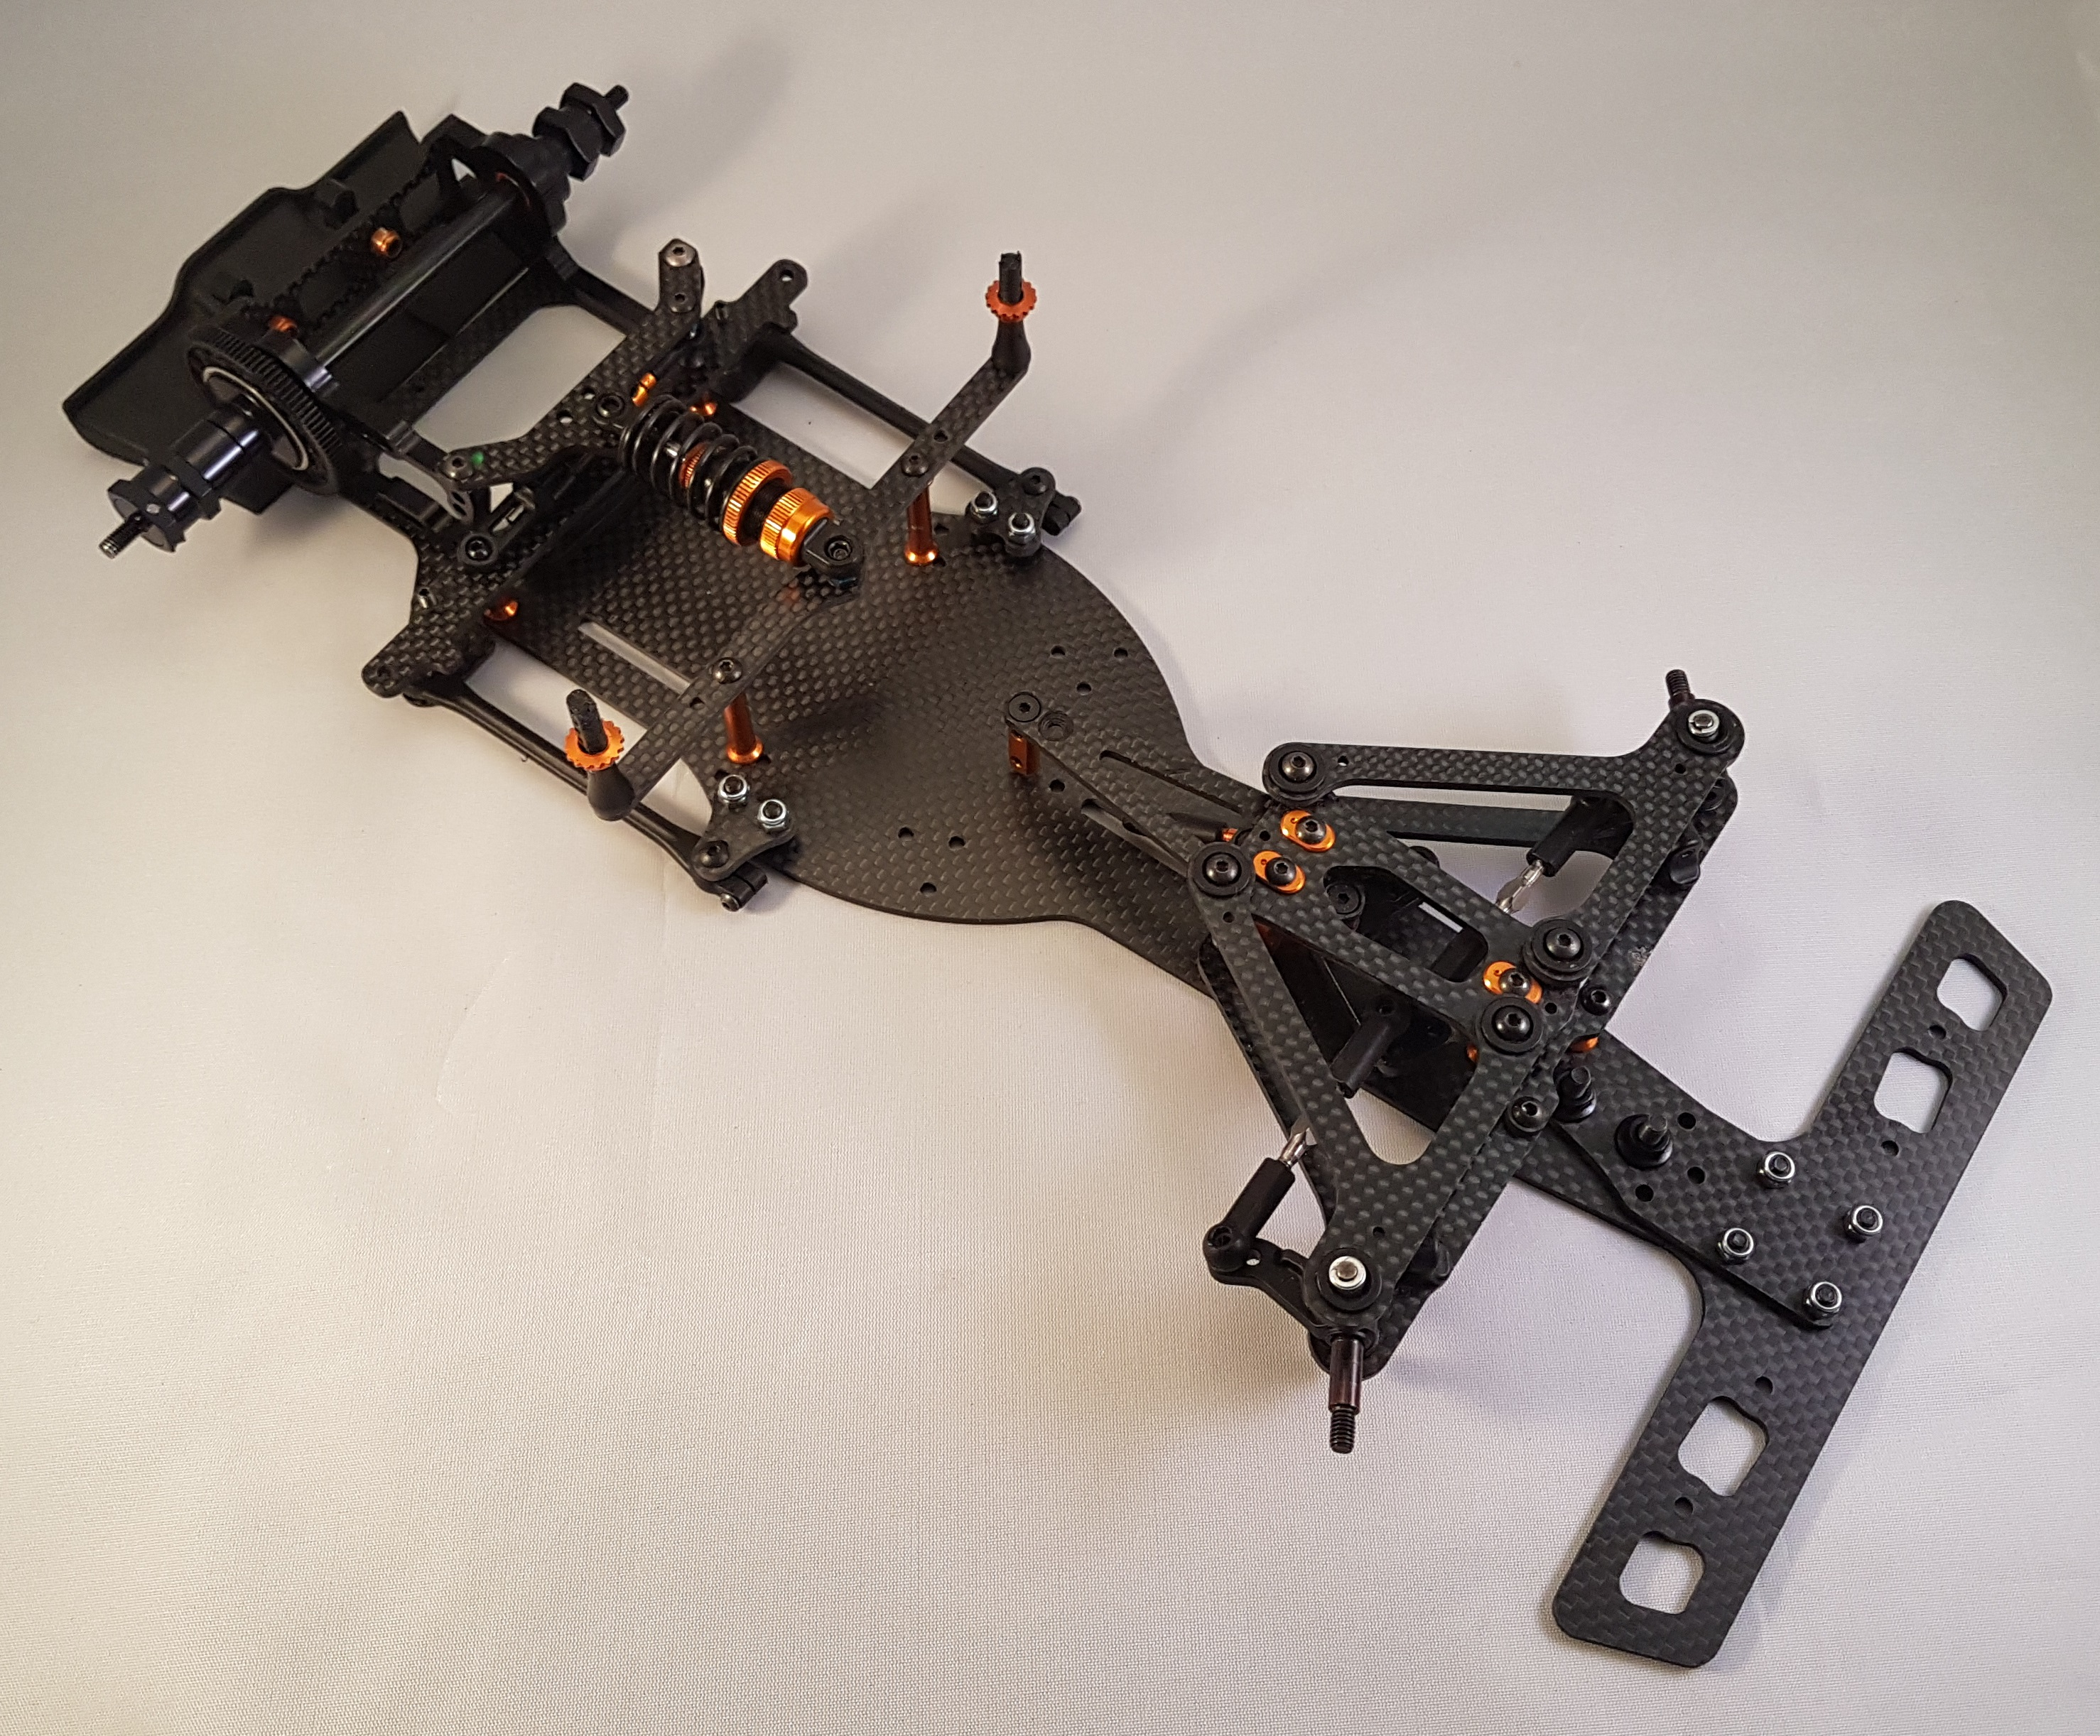 LM001 - LM bumper conversion for Formula one chassis